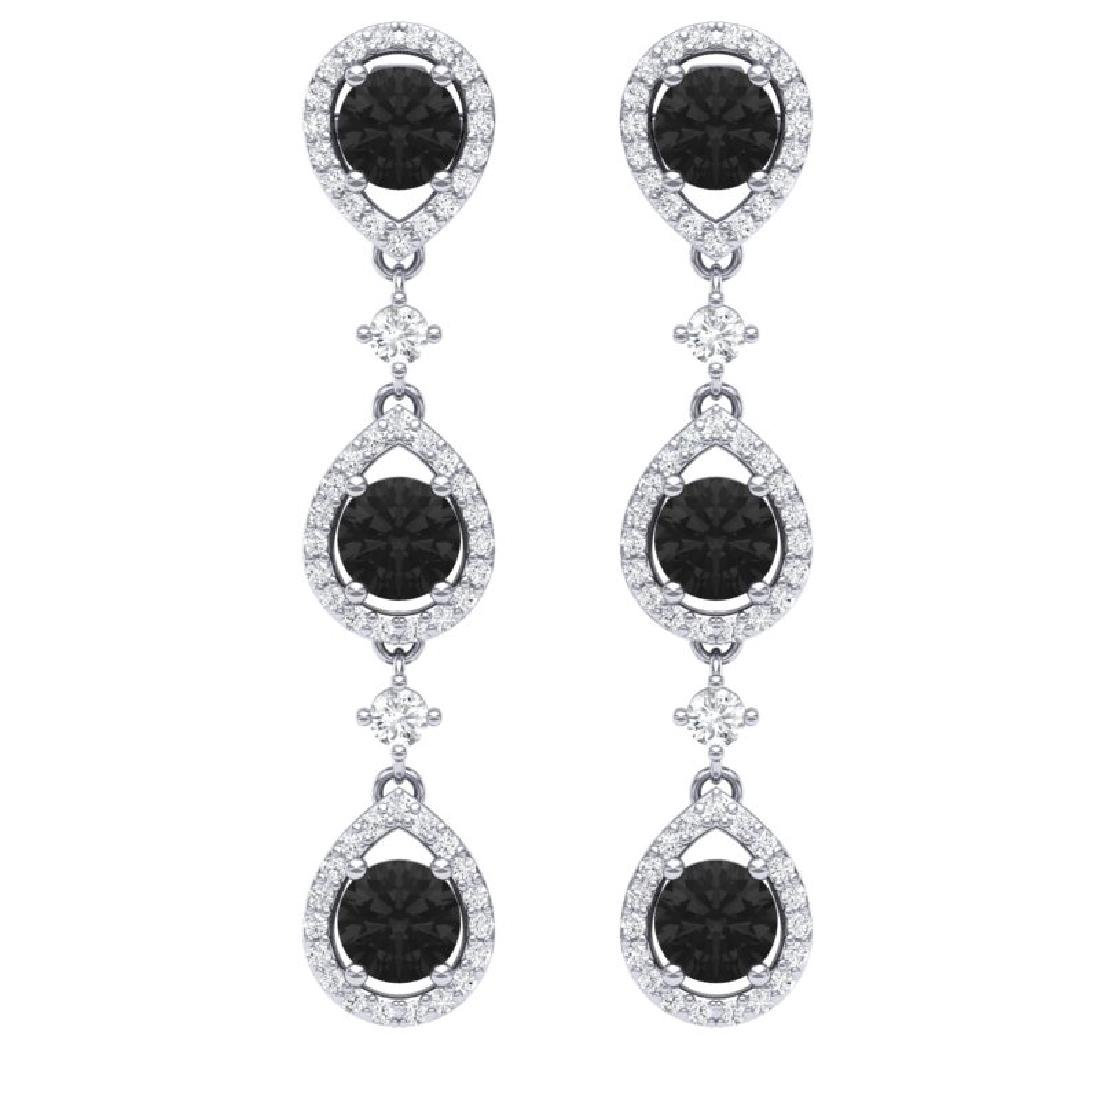 4.7 CTW Certified Black VS Diamond Earrings 18K White